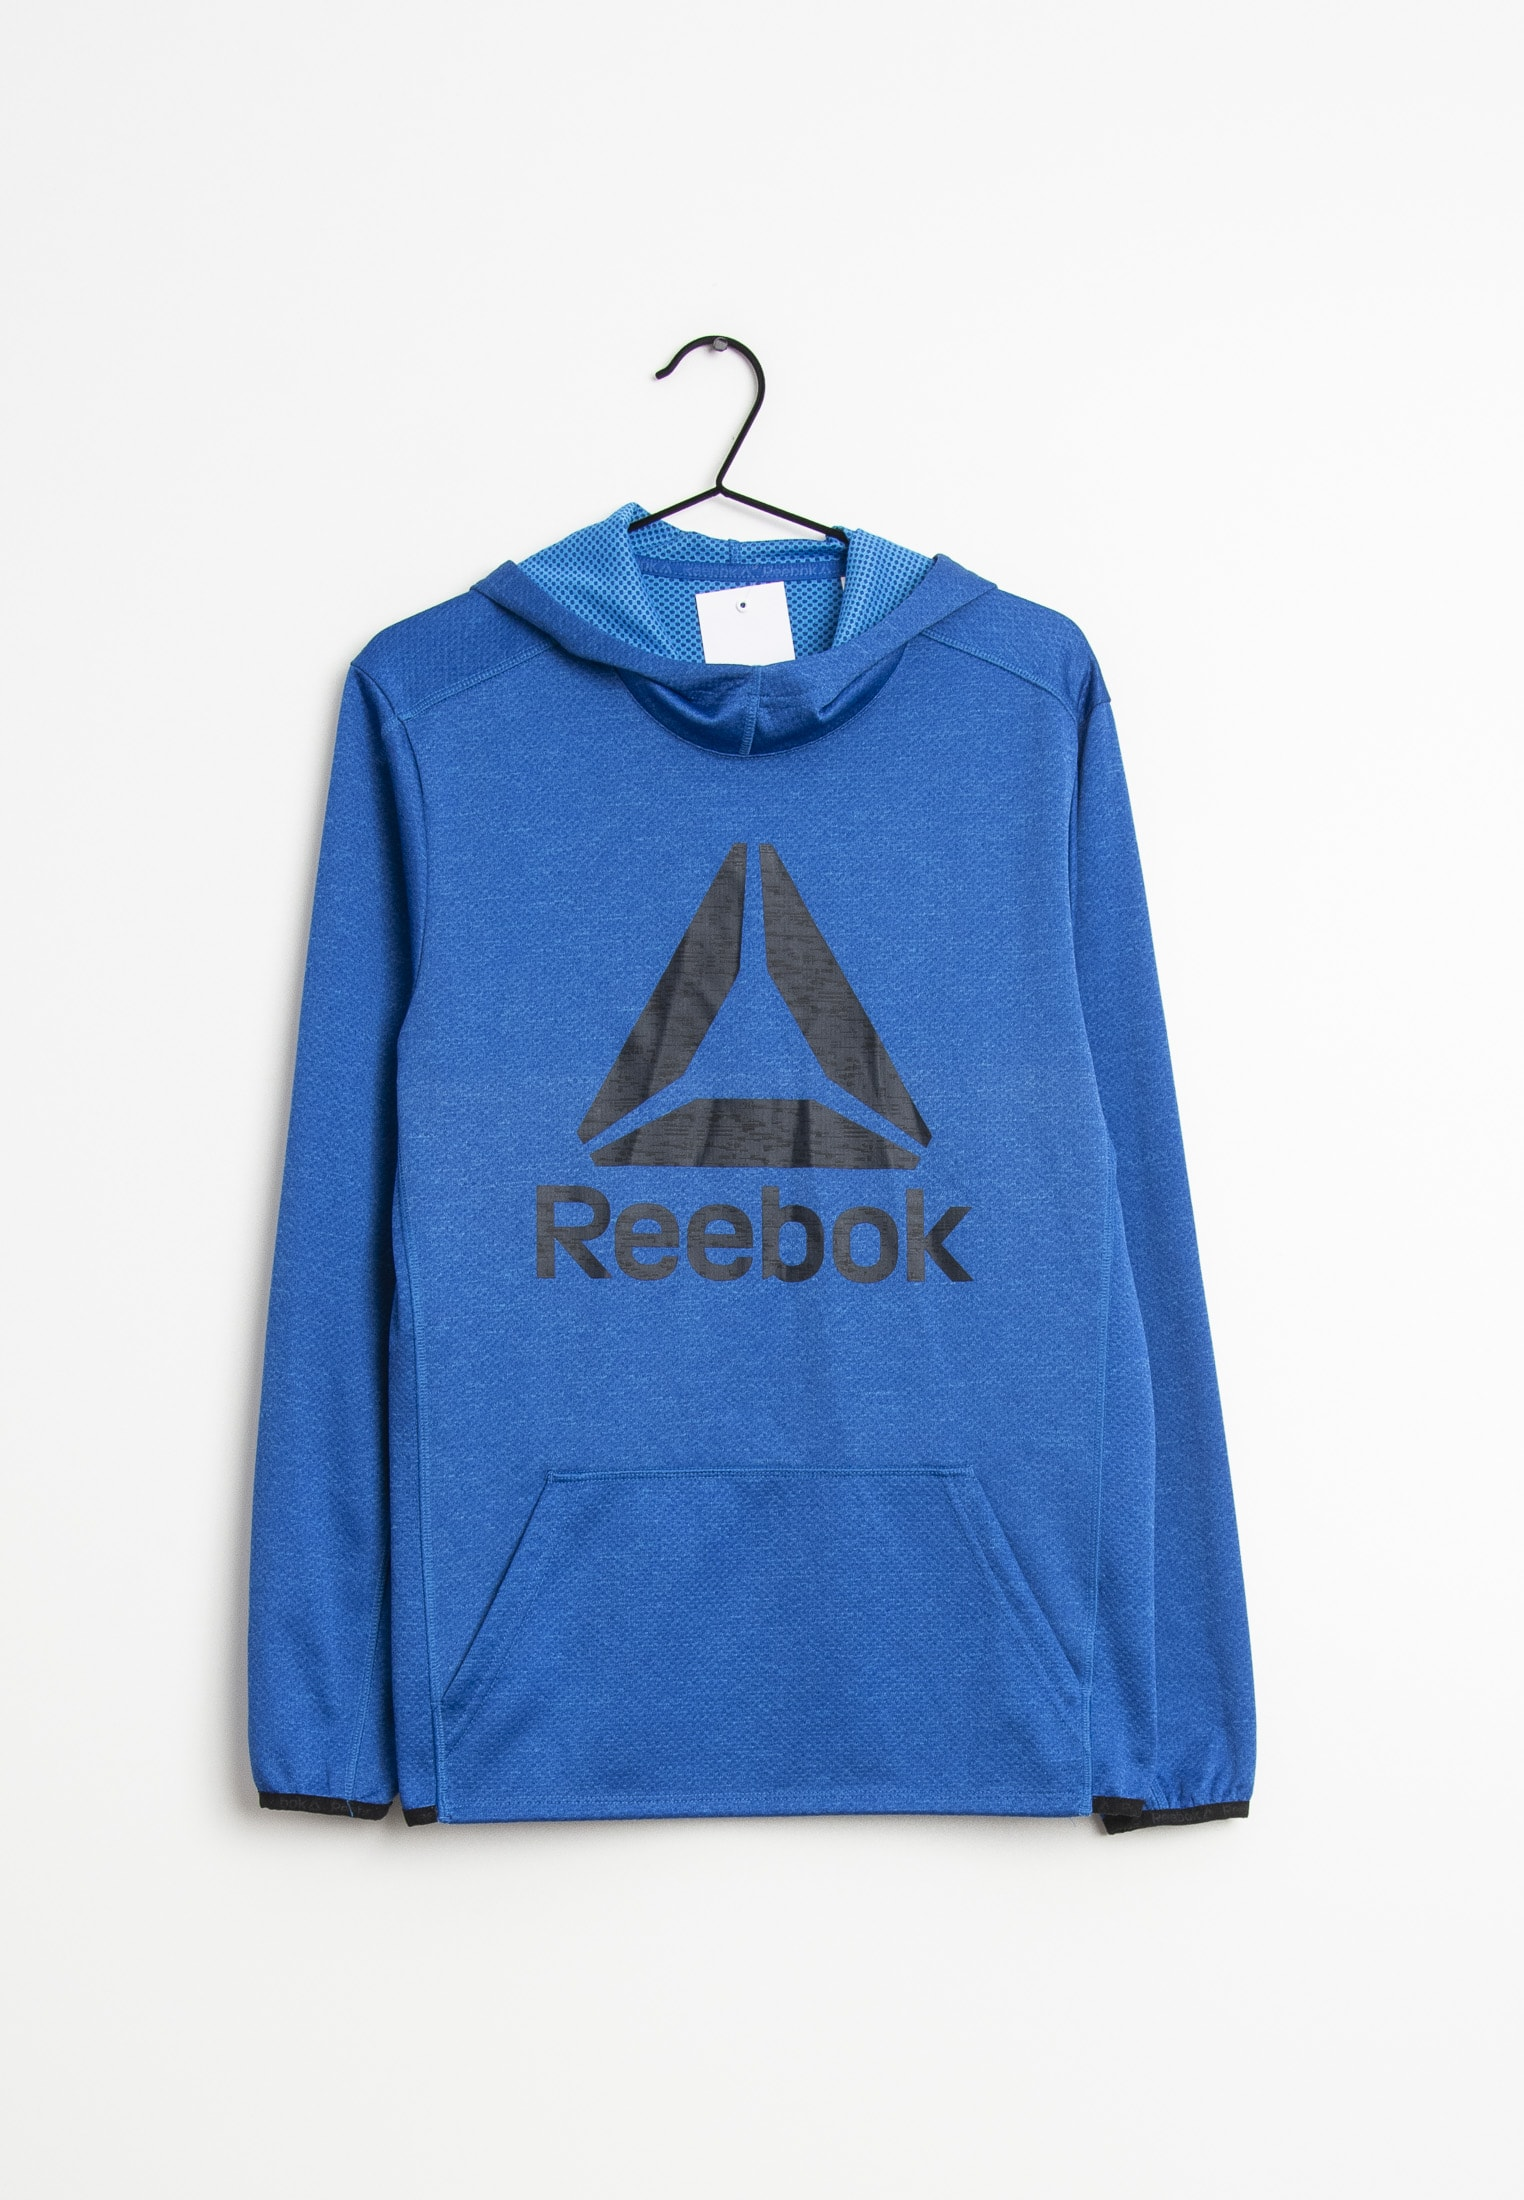 Reebok Sweat / Fleece Blau Gr.S